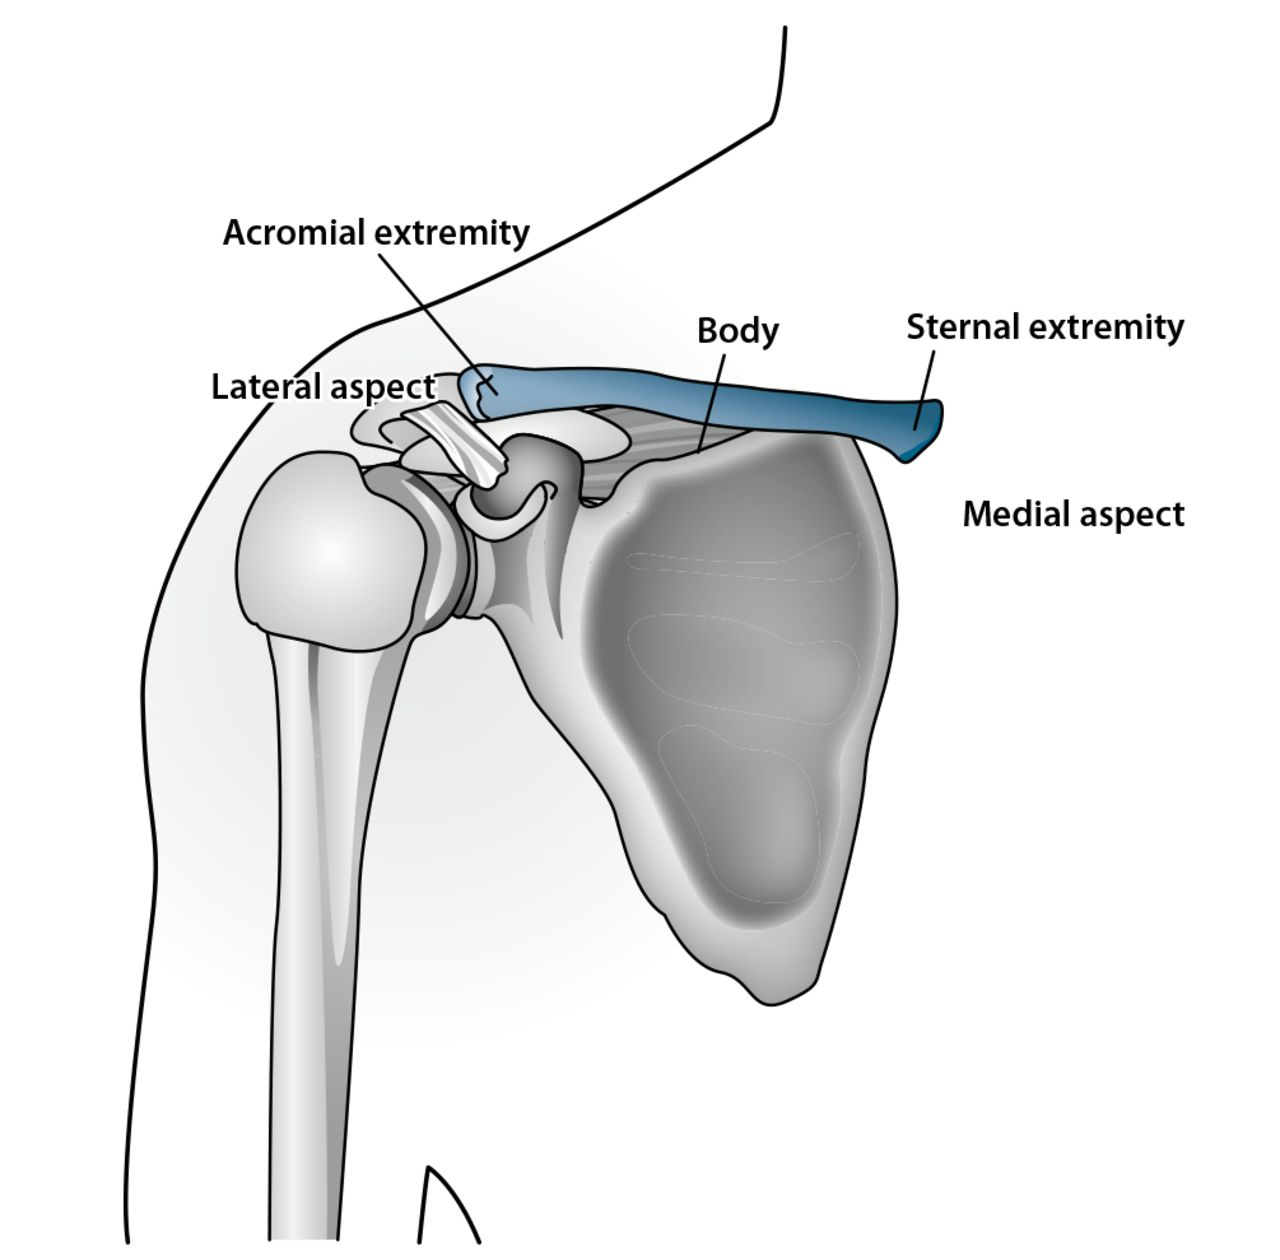 Forensic Age Estimation Using the Medial Clavicular Epiphysis: A ...